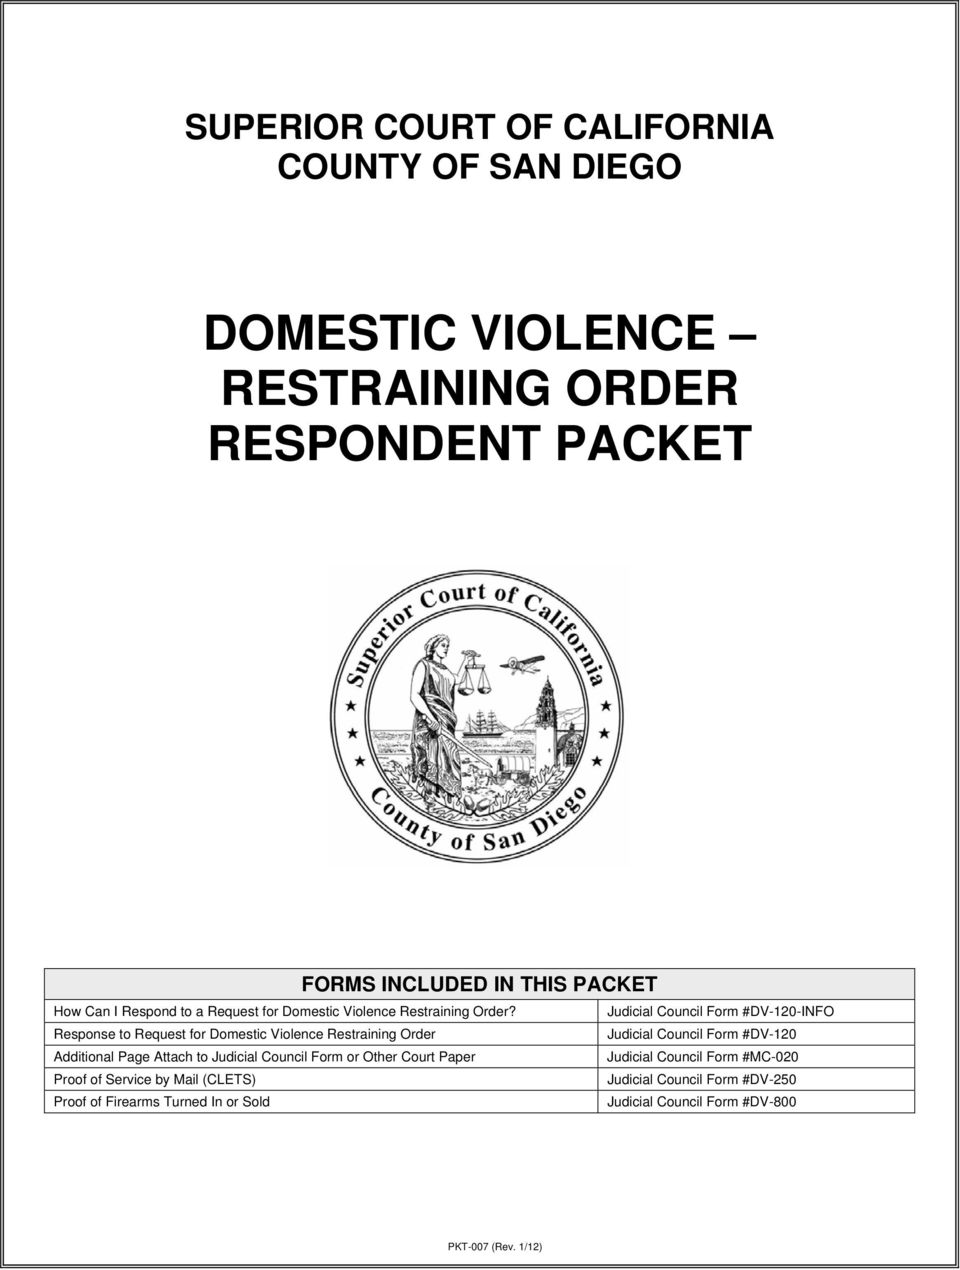 Judicial Council Form #DV-120-INFO Response to Request for Domestic Violence Restraining Order Judicial Council Form #DV-120 Additional Page